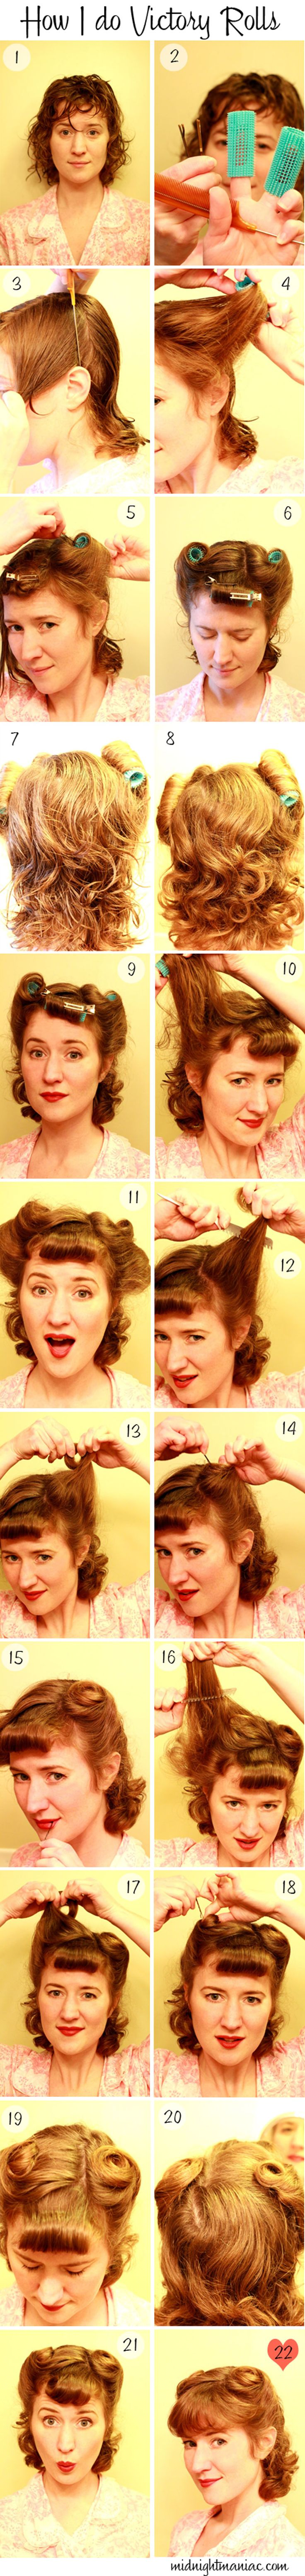 Victory Roll Pictorial Victory Rolls for Short Hair #myhautedame Februhairy Day 17 - hair tutorial